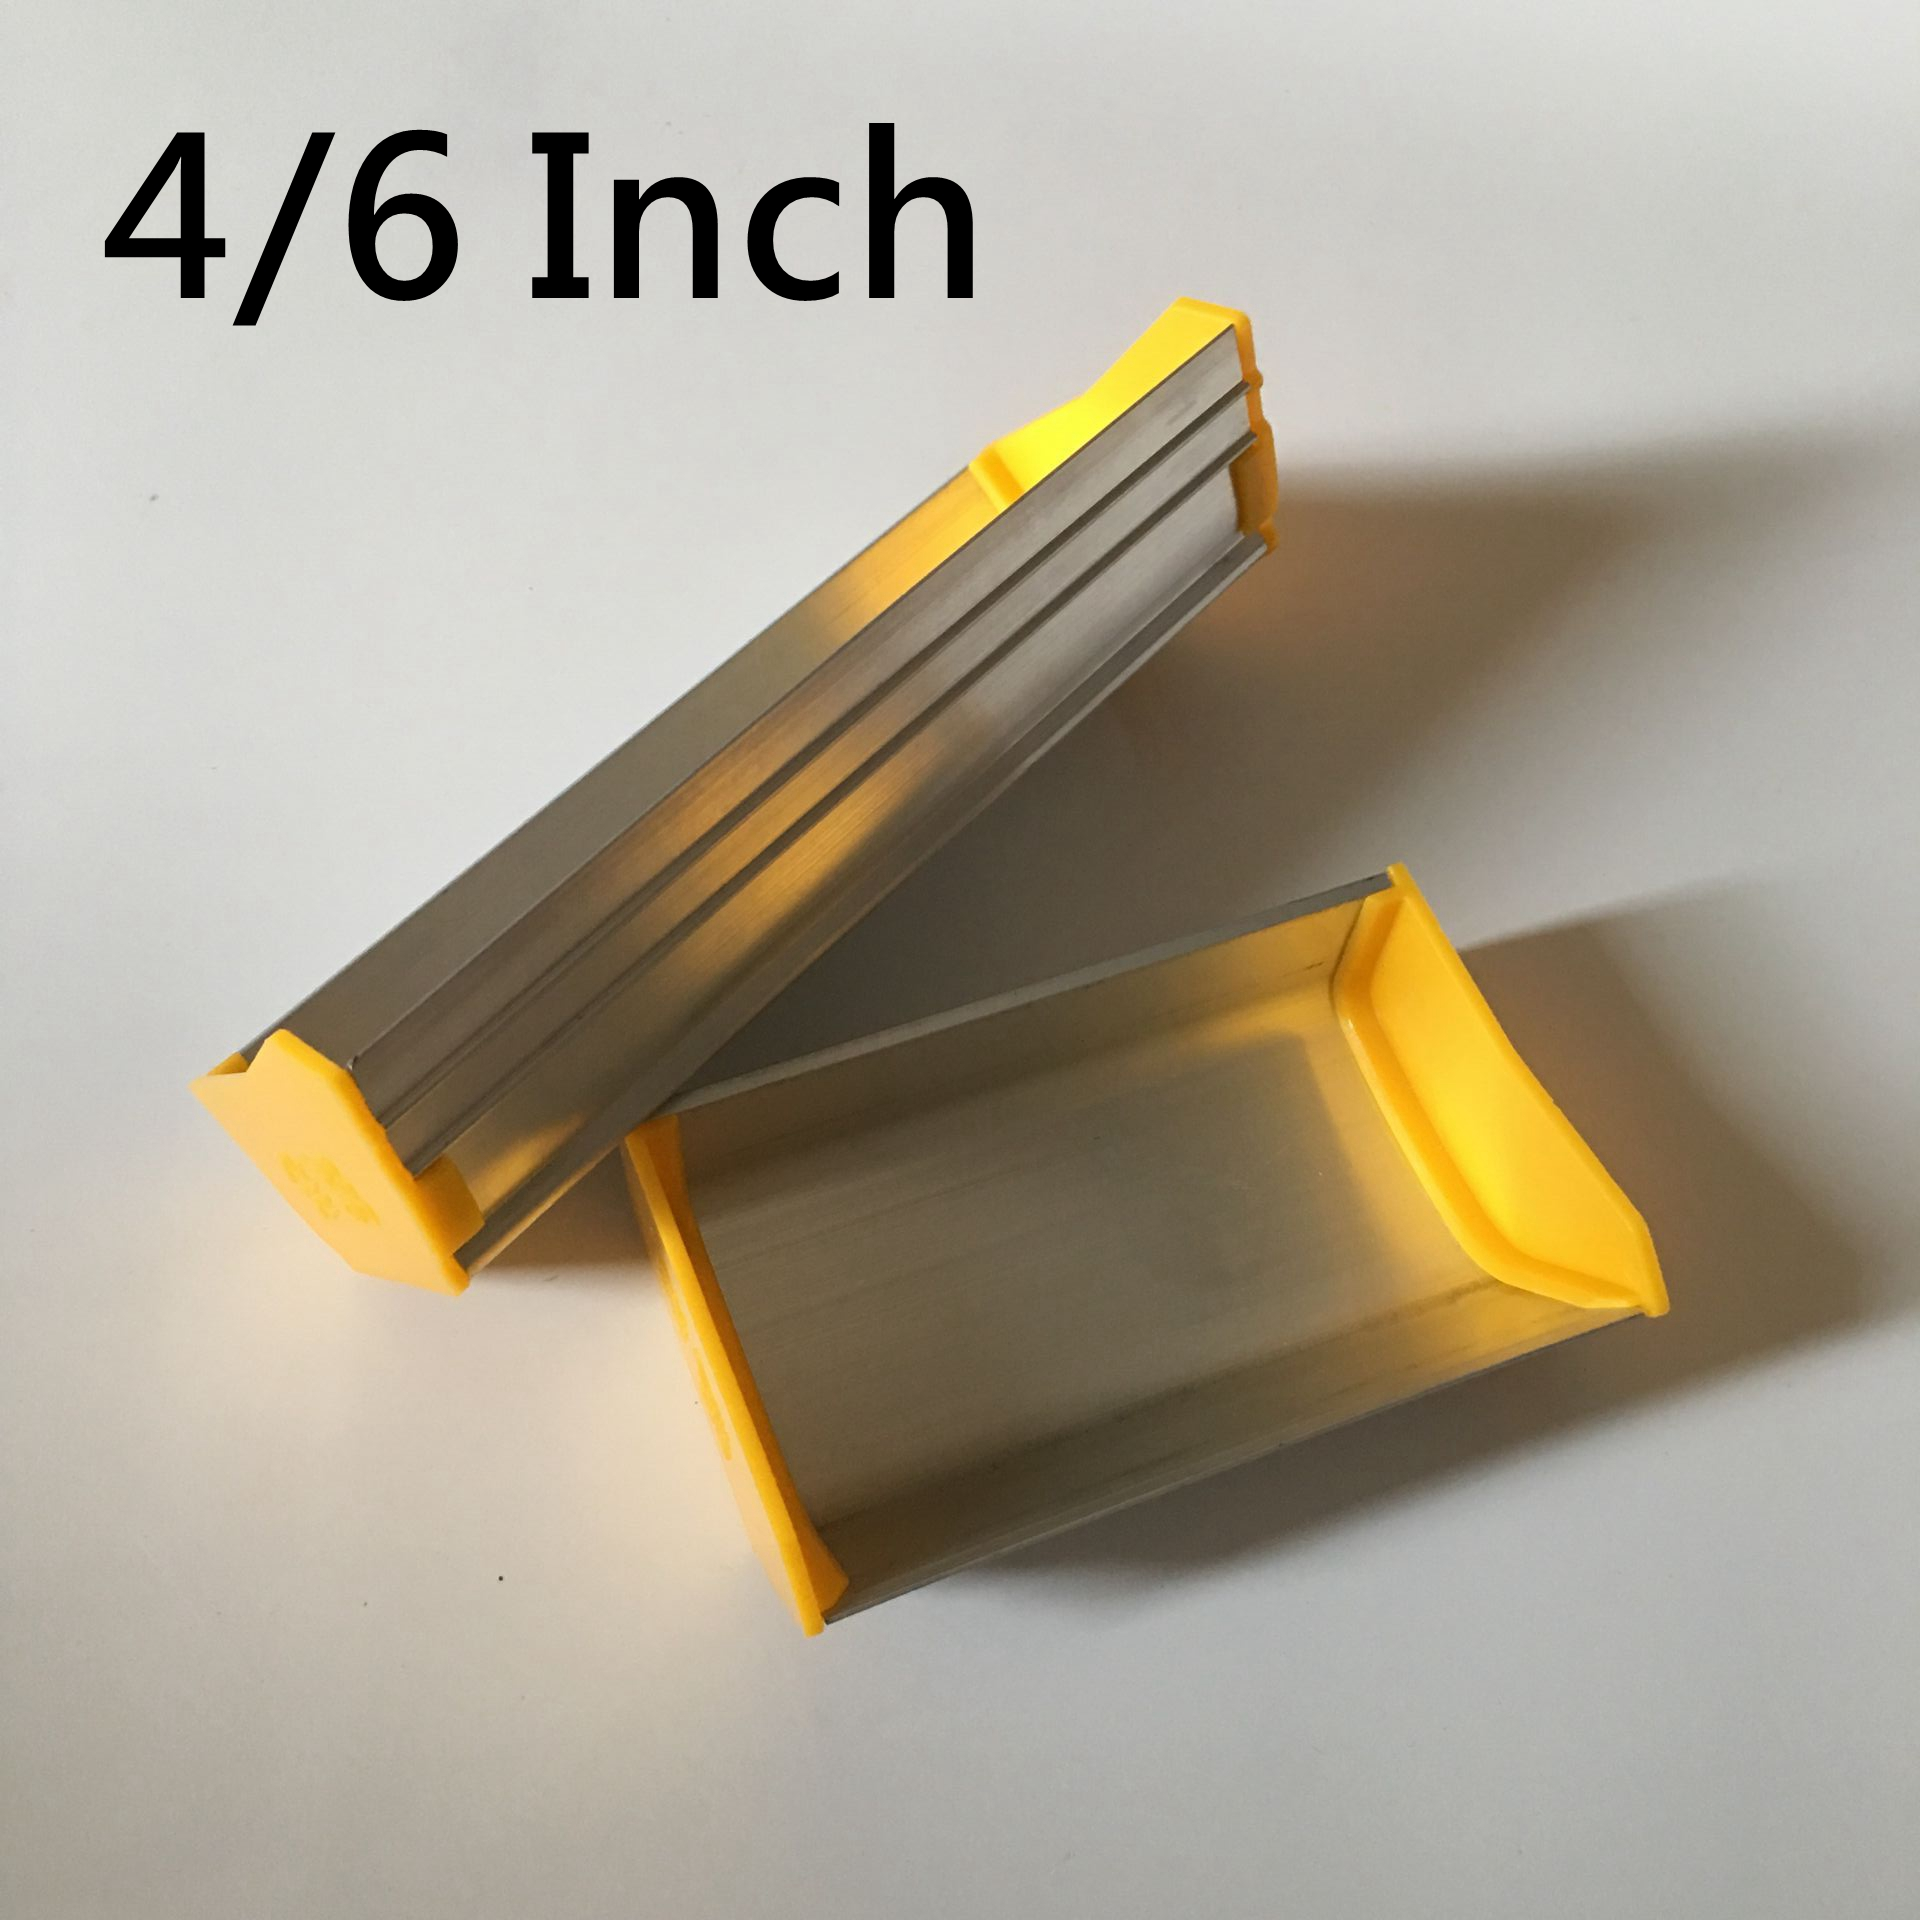 4/6 Inch Screen Printing Aluminum Alloy Emulsion Scoop Coater 11/16CM Silk Screen Printing Sizing Scrape Coating Press Tools